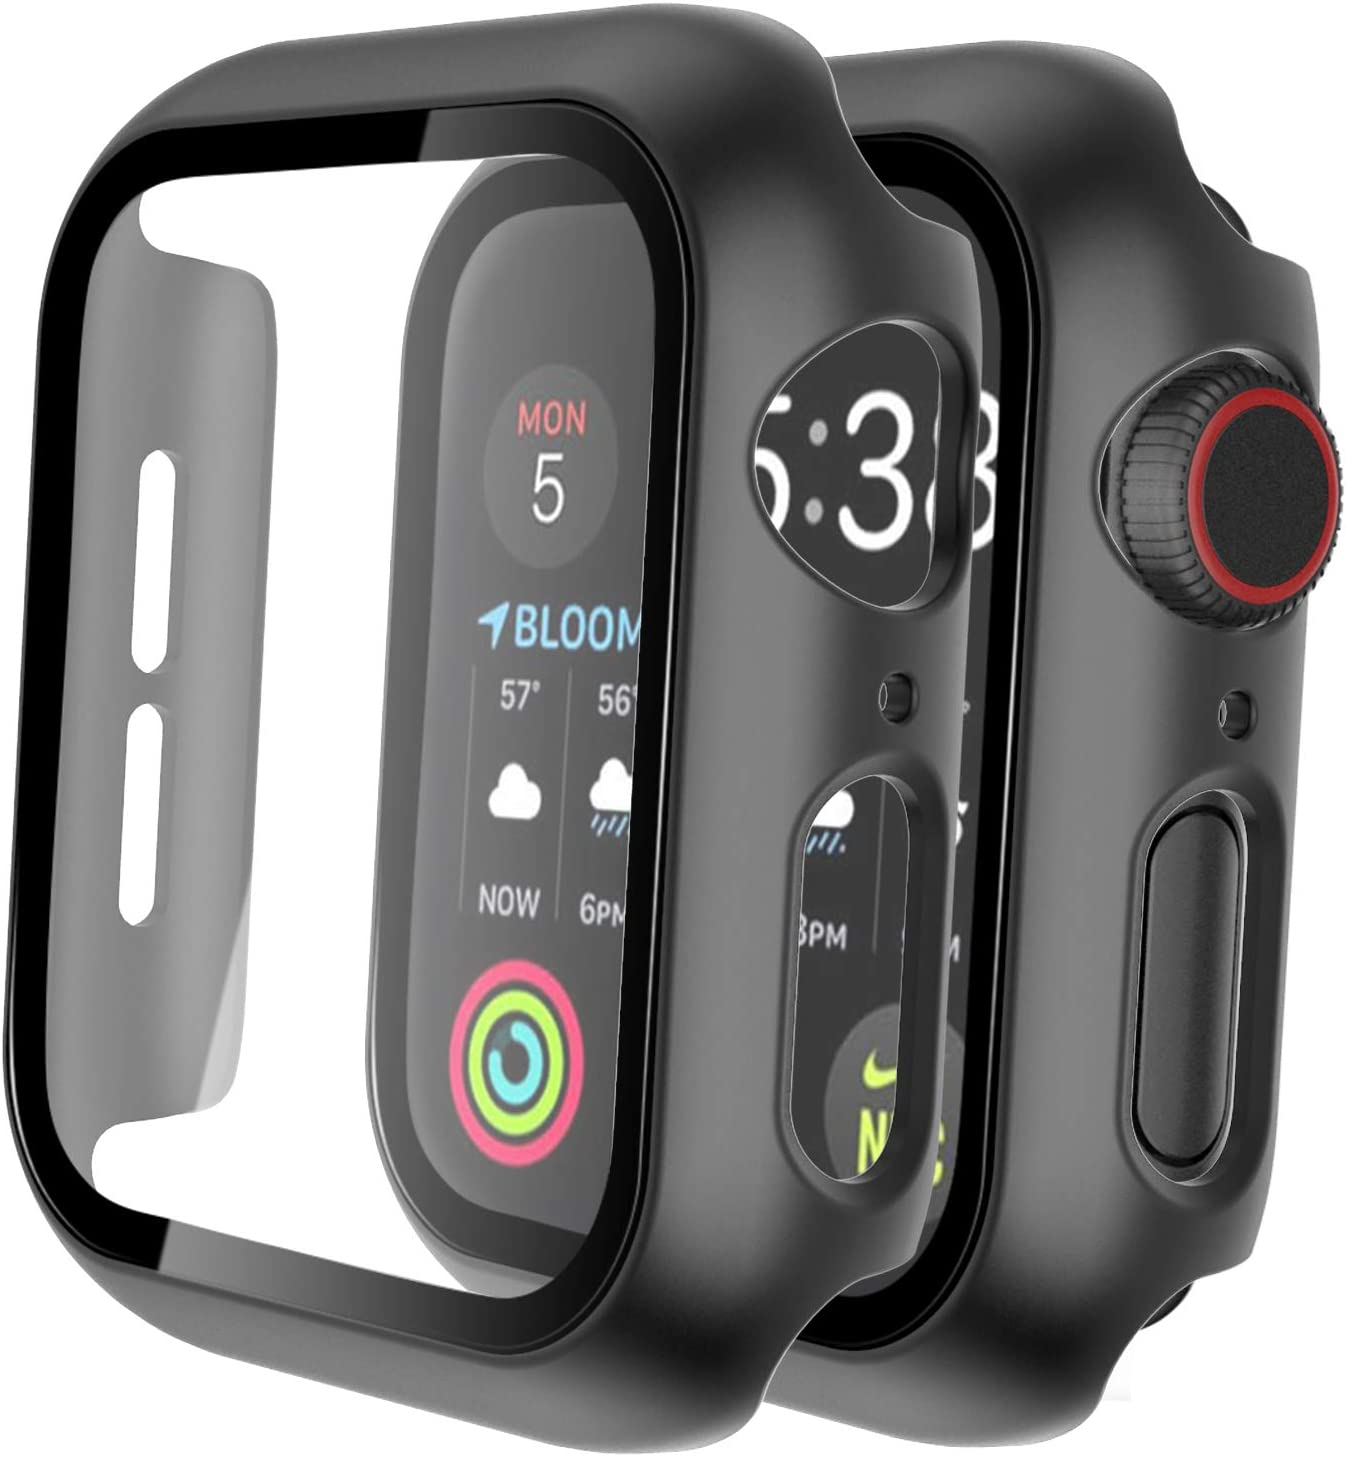 Tauri 2 Pack Hard Case Compatible for Apple Watch Series 3 2 1 42mm Built in 9H Tempered Glass Screen Protector Slim Bumper Touch Sensitive Full Protective Cover Compatible for iWatch 42mm - Black